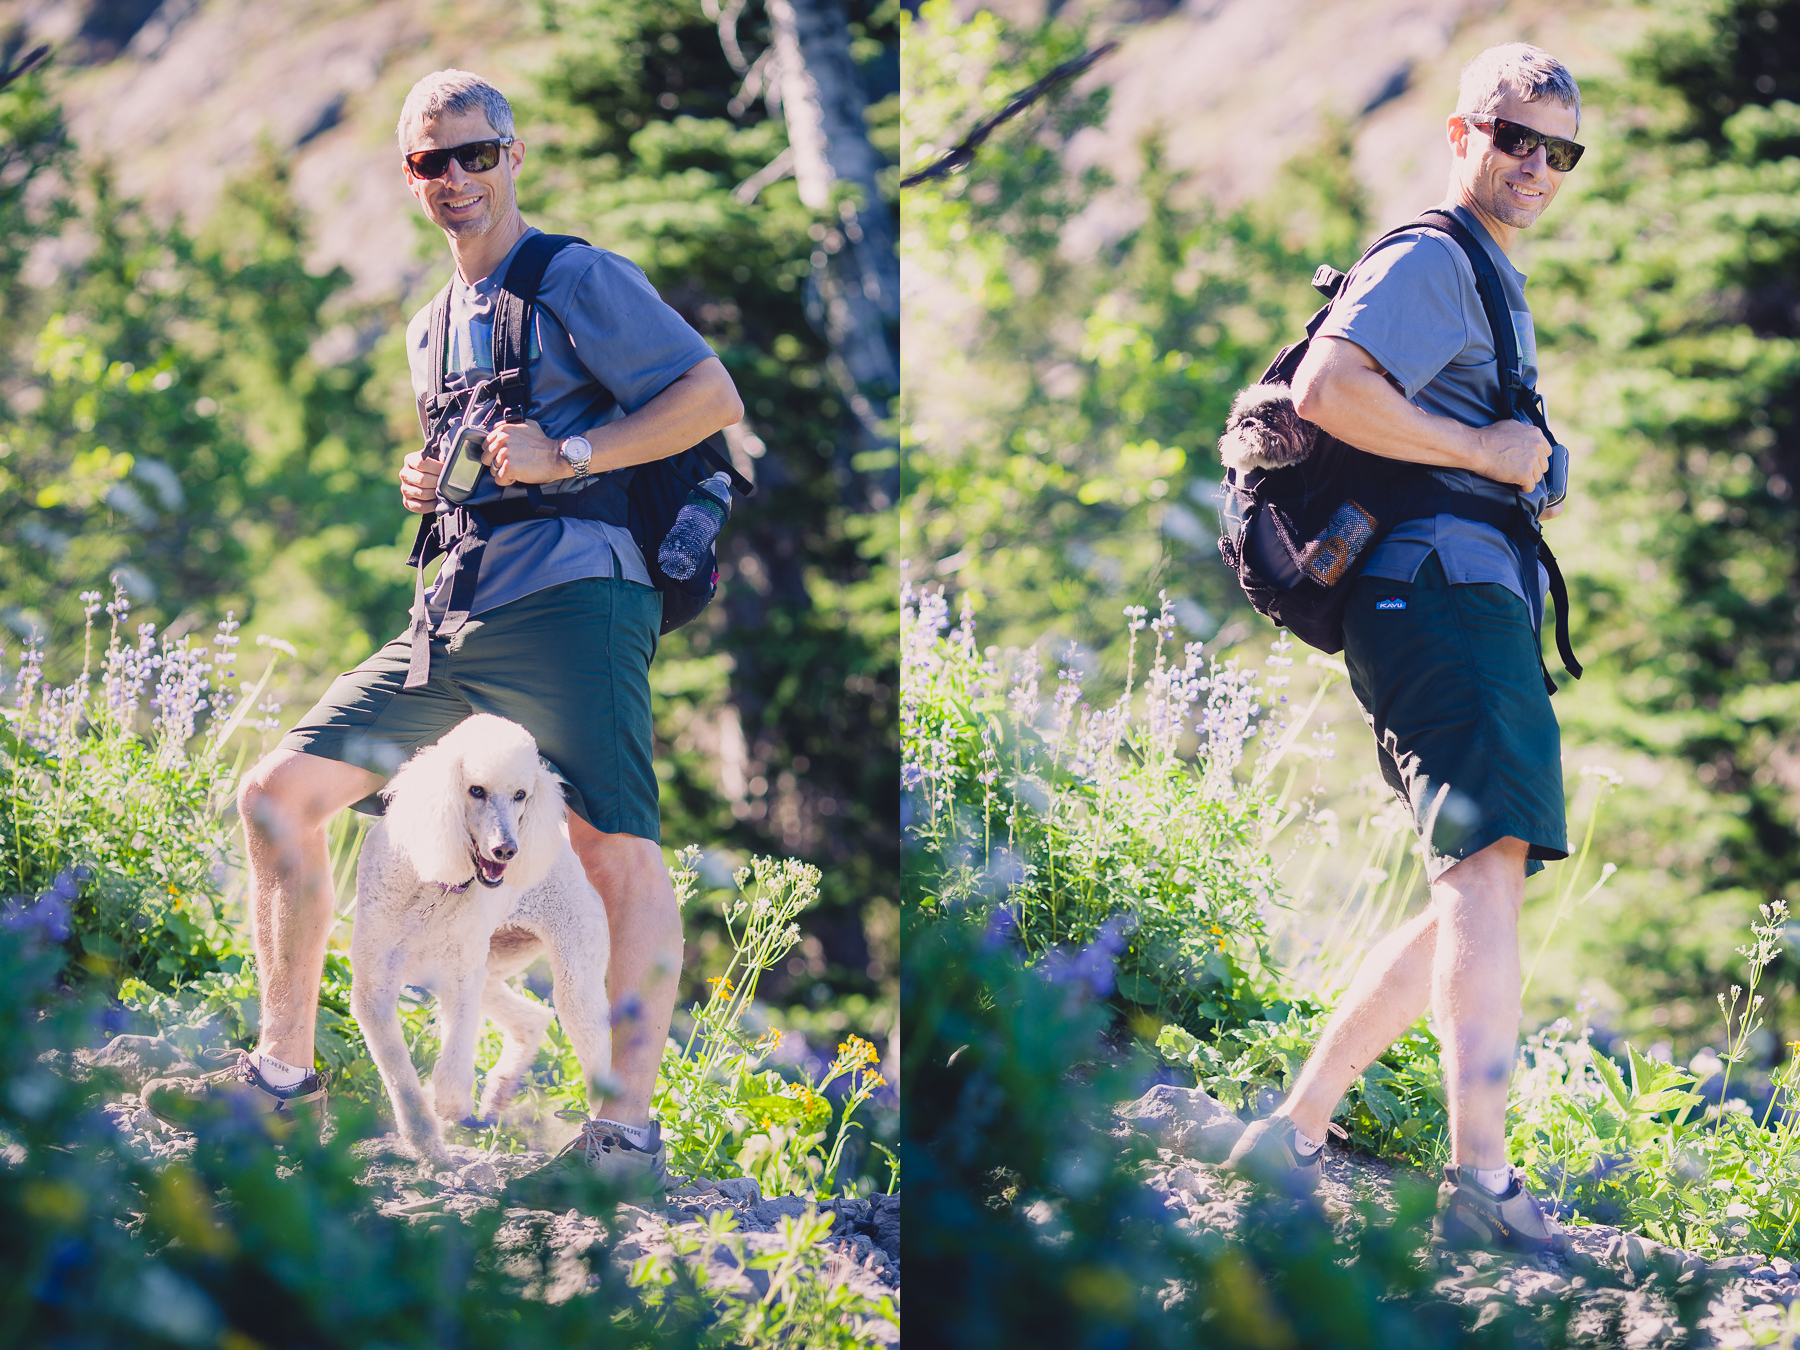 Left: Sasha the poodle photo bombs Eric's portrait. Right: Joey winces at the camera from the pack.